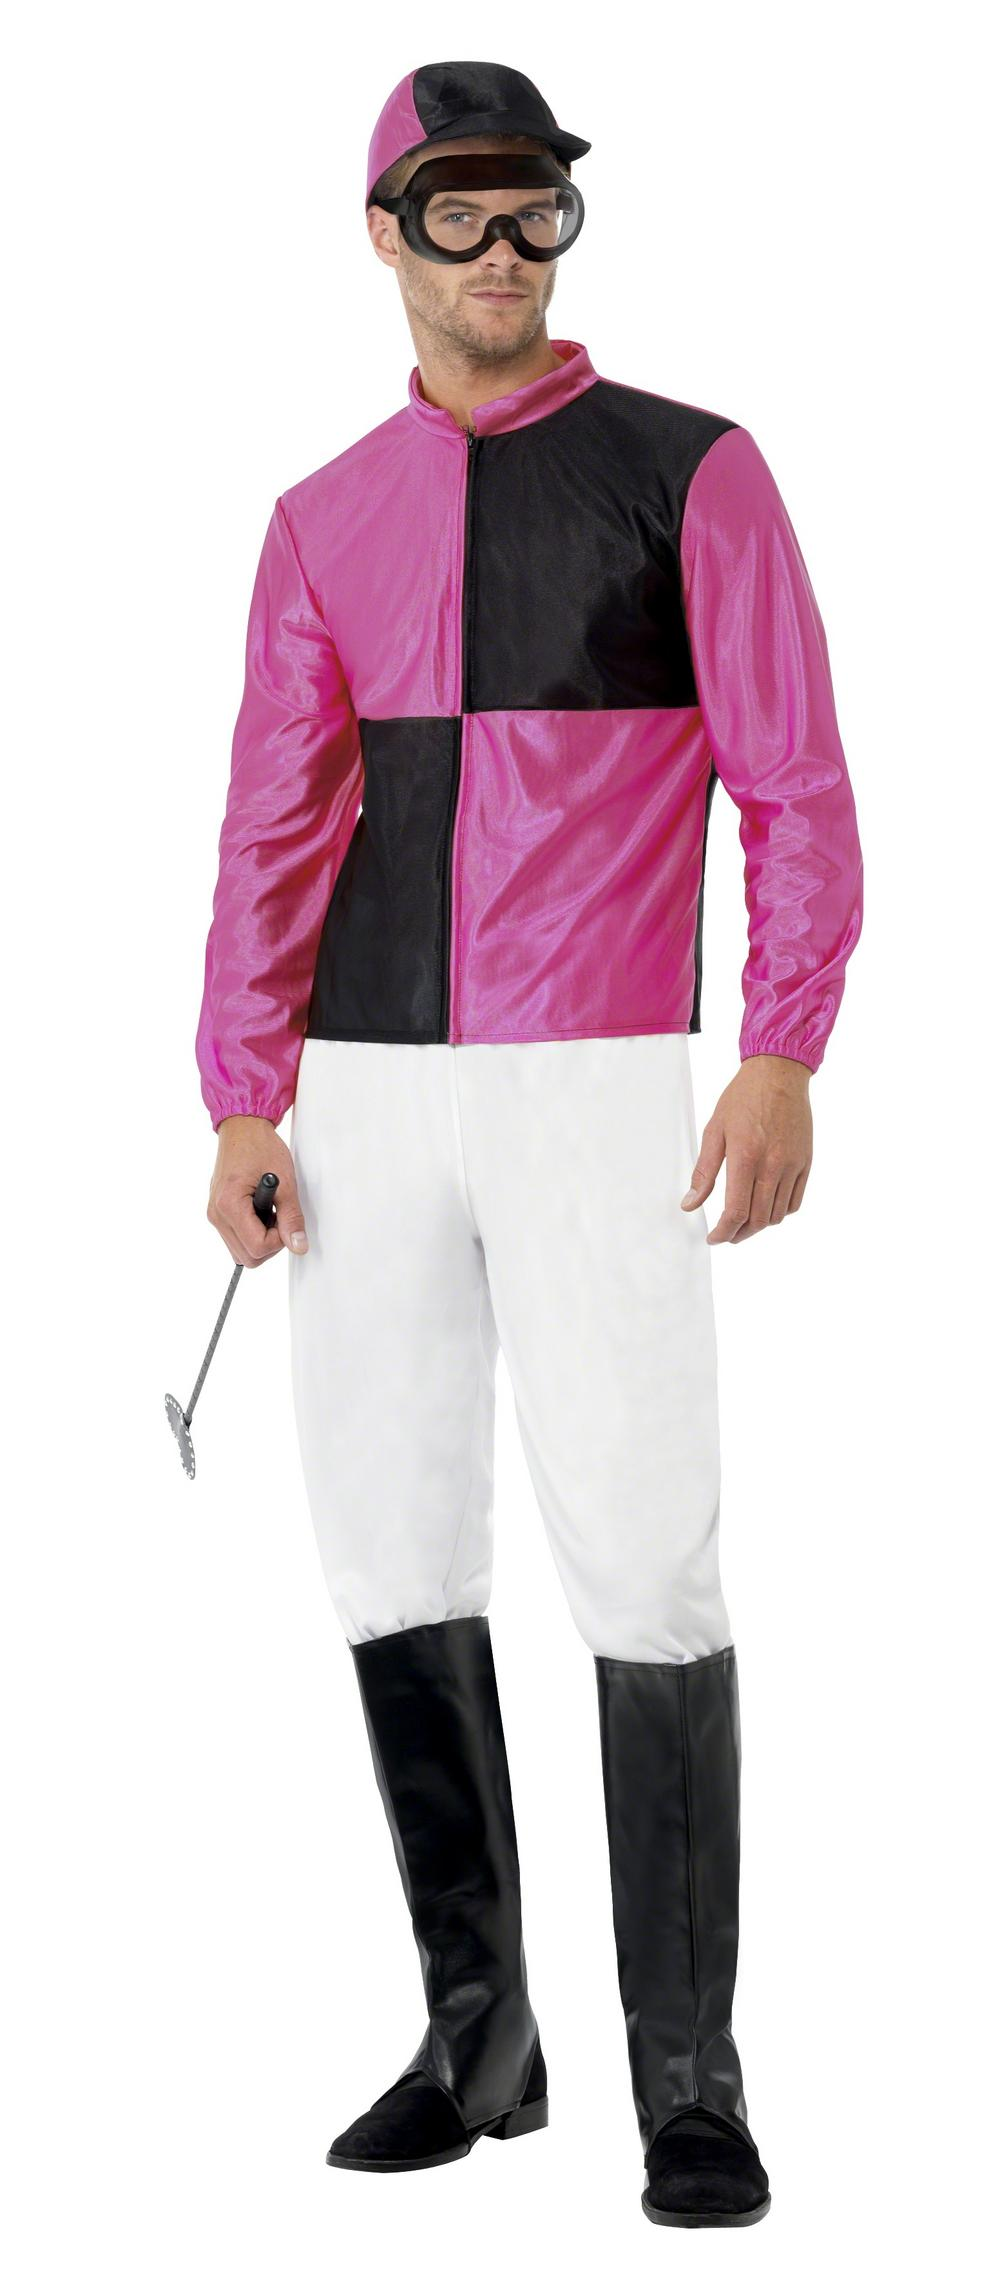 Pink and Black Jockey Costume